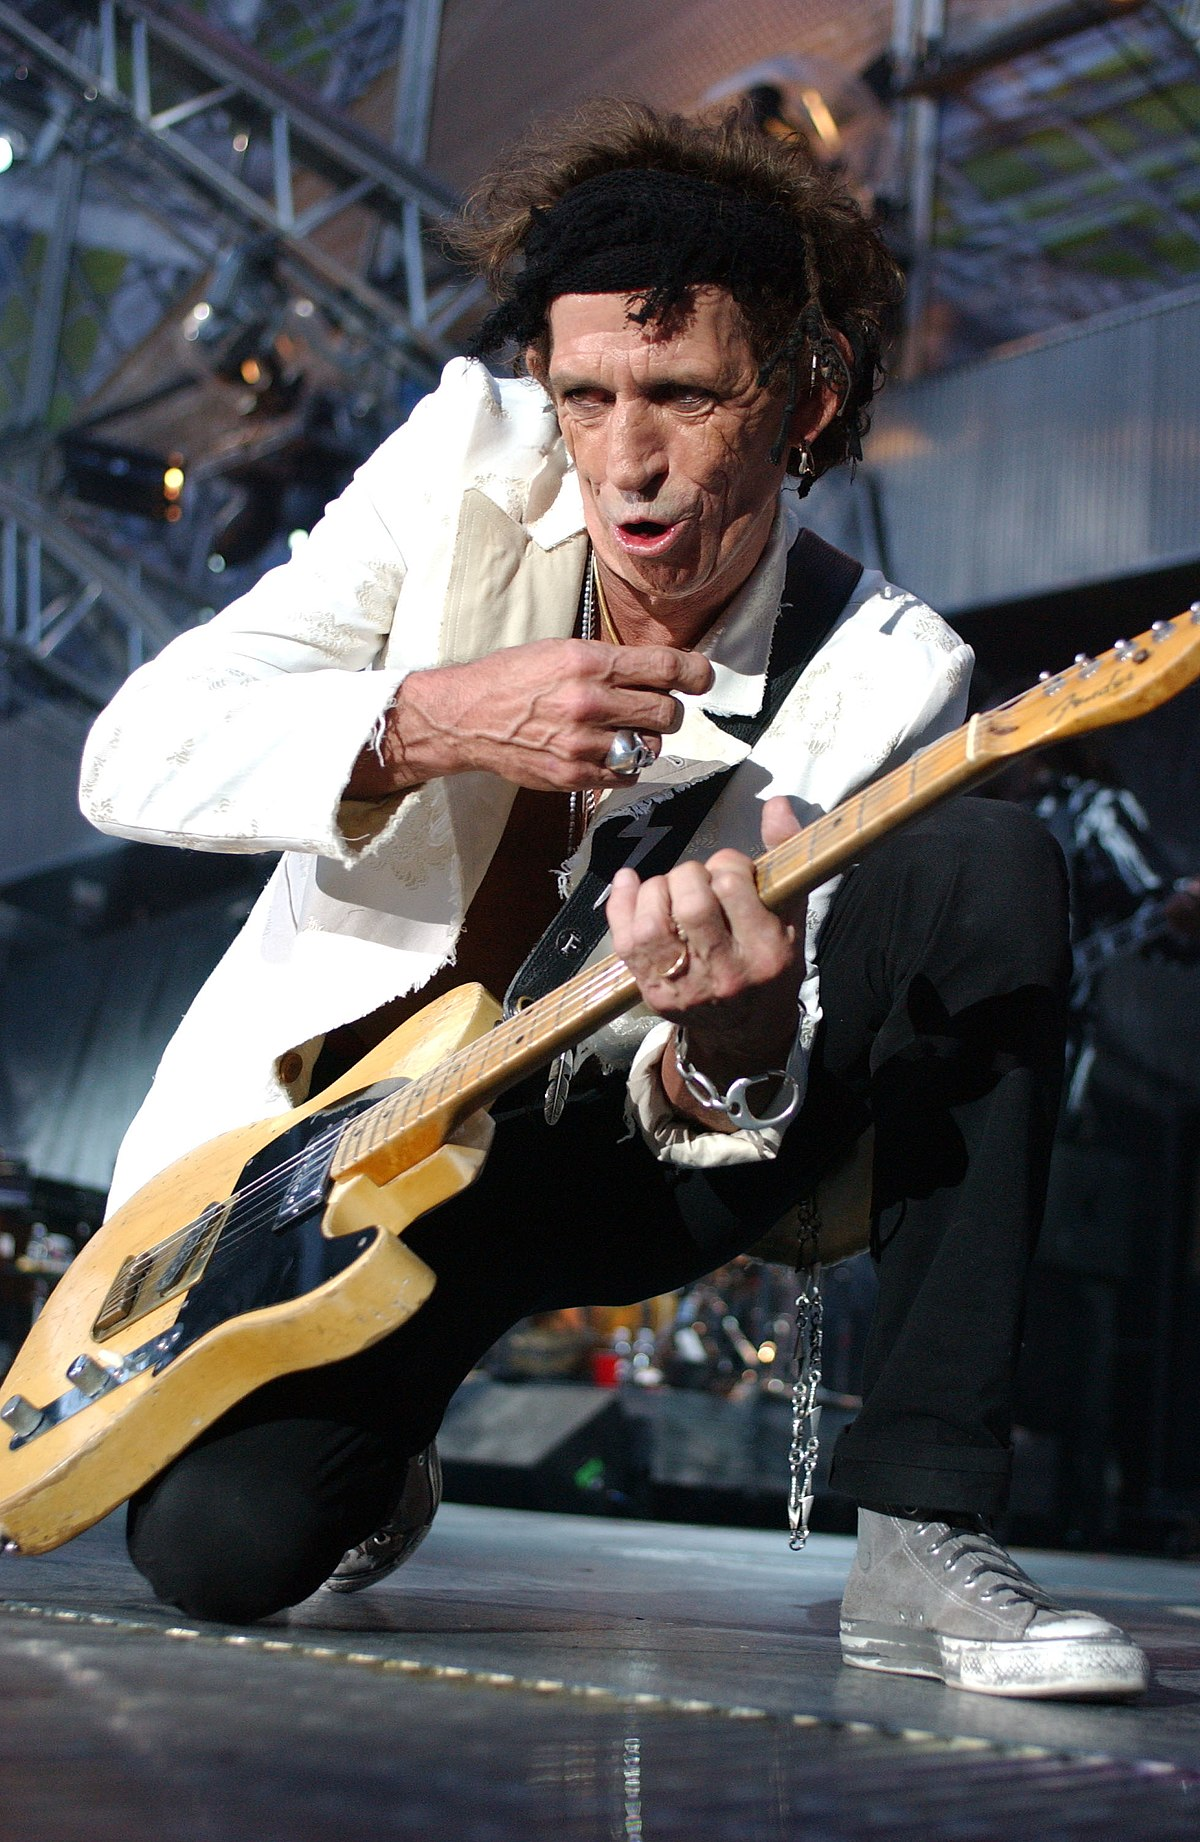 Keith Richards - Wikipedia